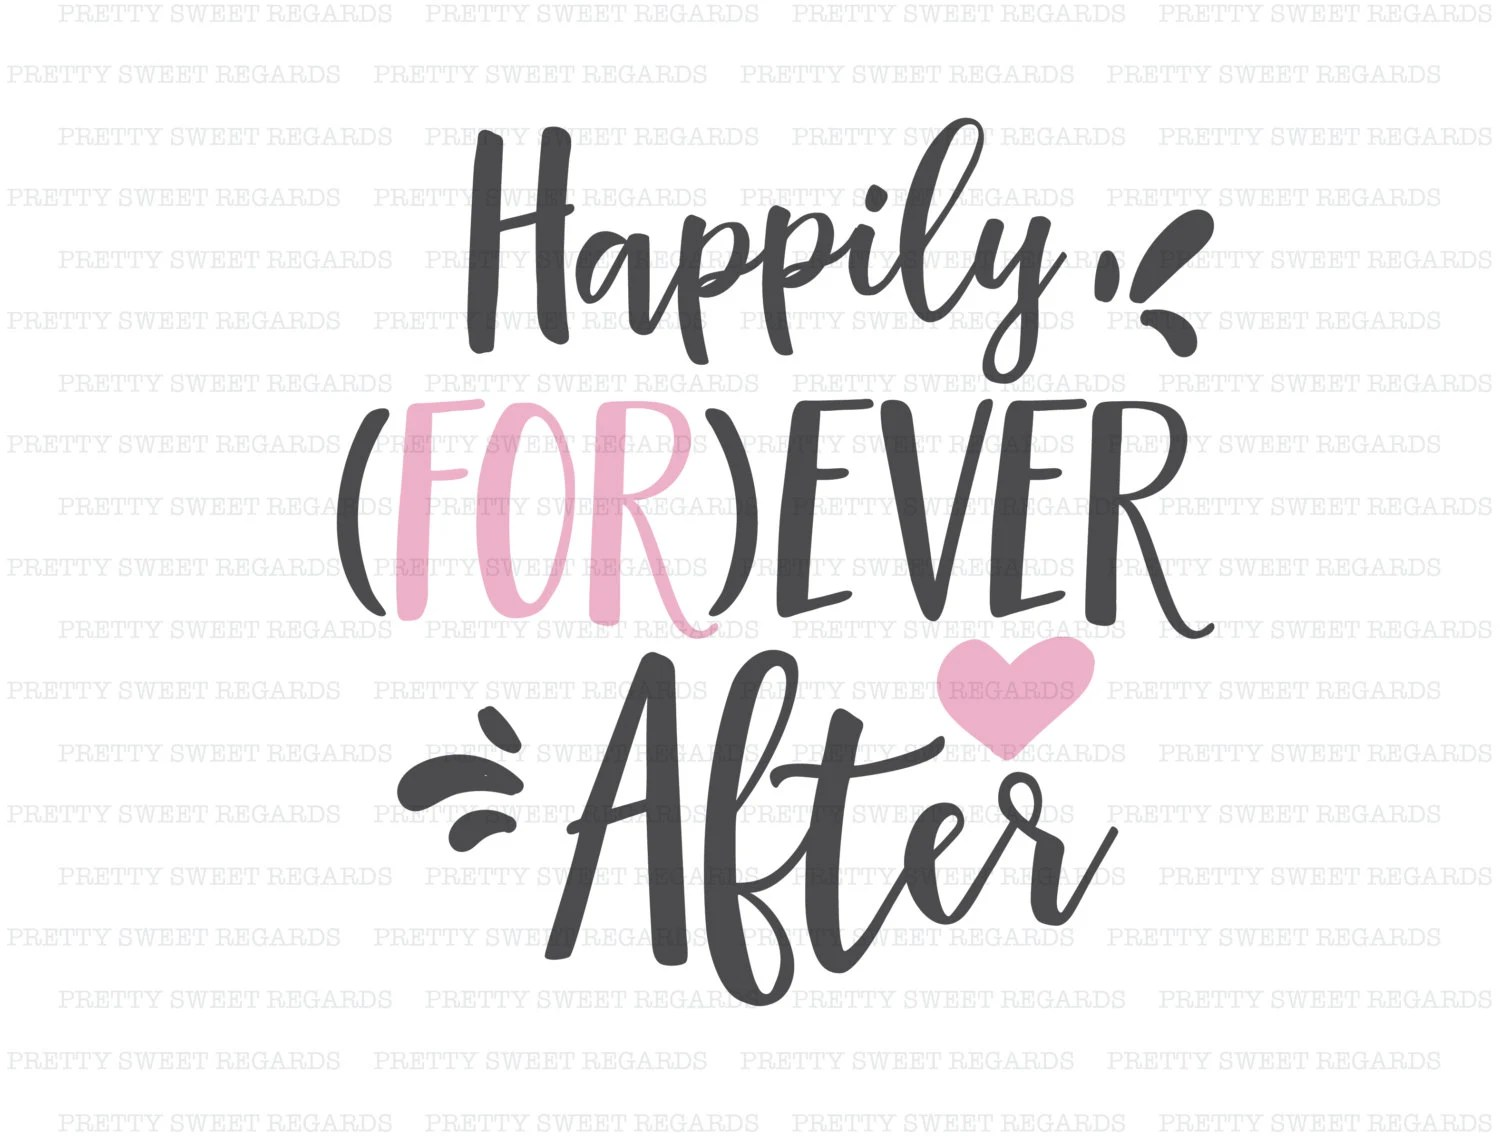 Wedding Clipart Wedding Clip Art Happily Ever After